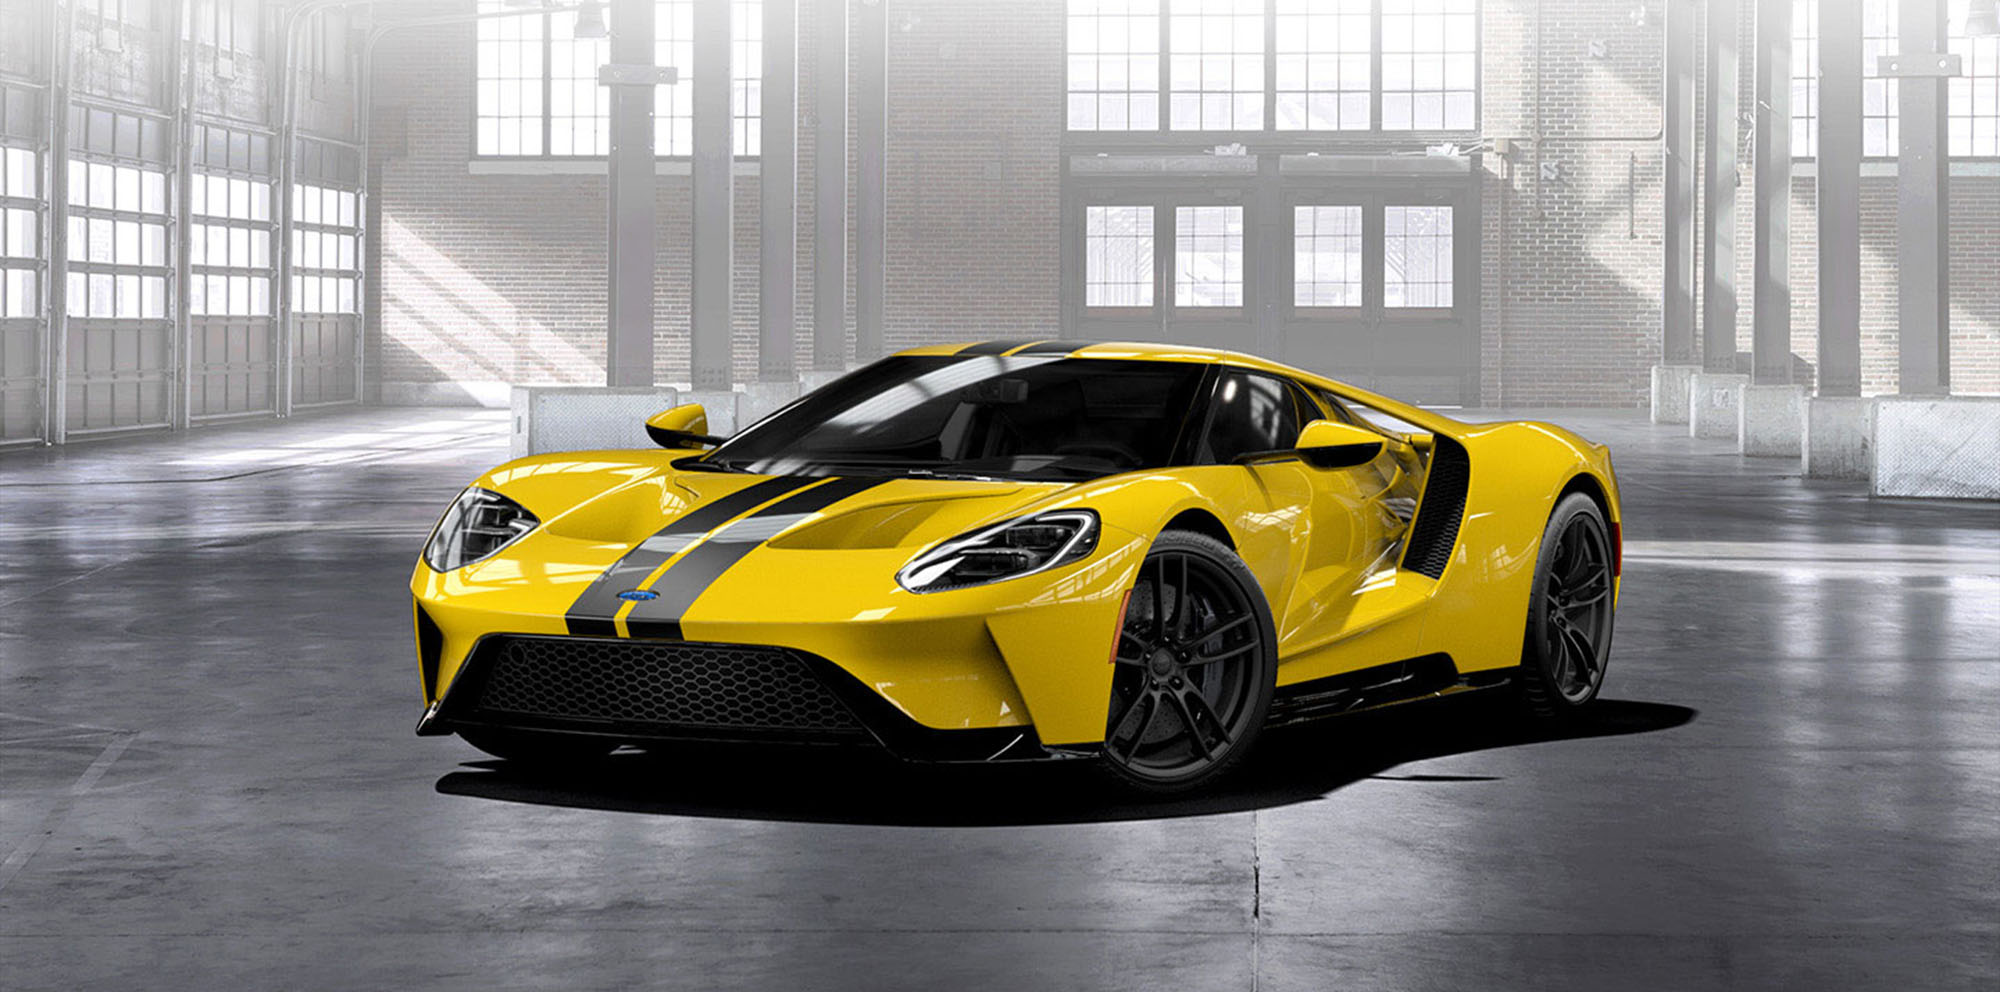 Ford Gt 2017 Price >> 2017 Ford Gt Order Book Opens 500 Available But None For Australia